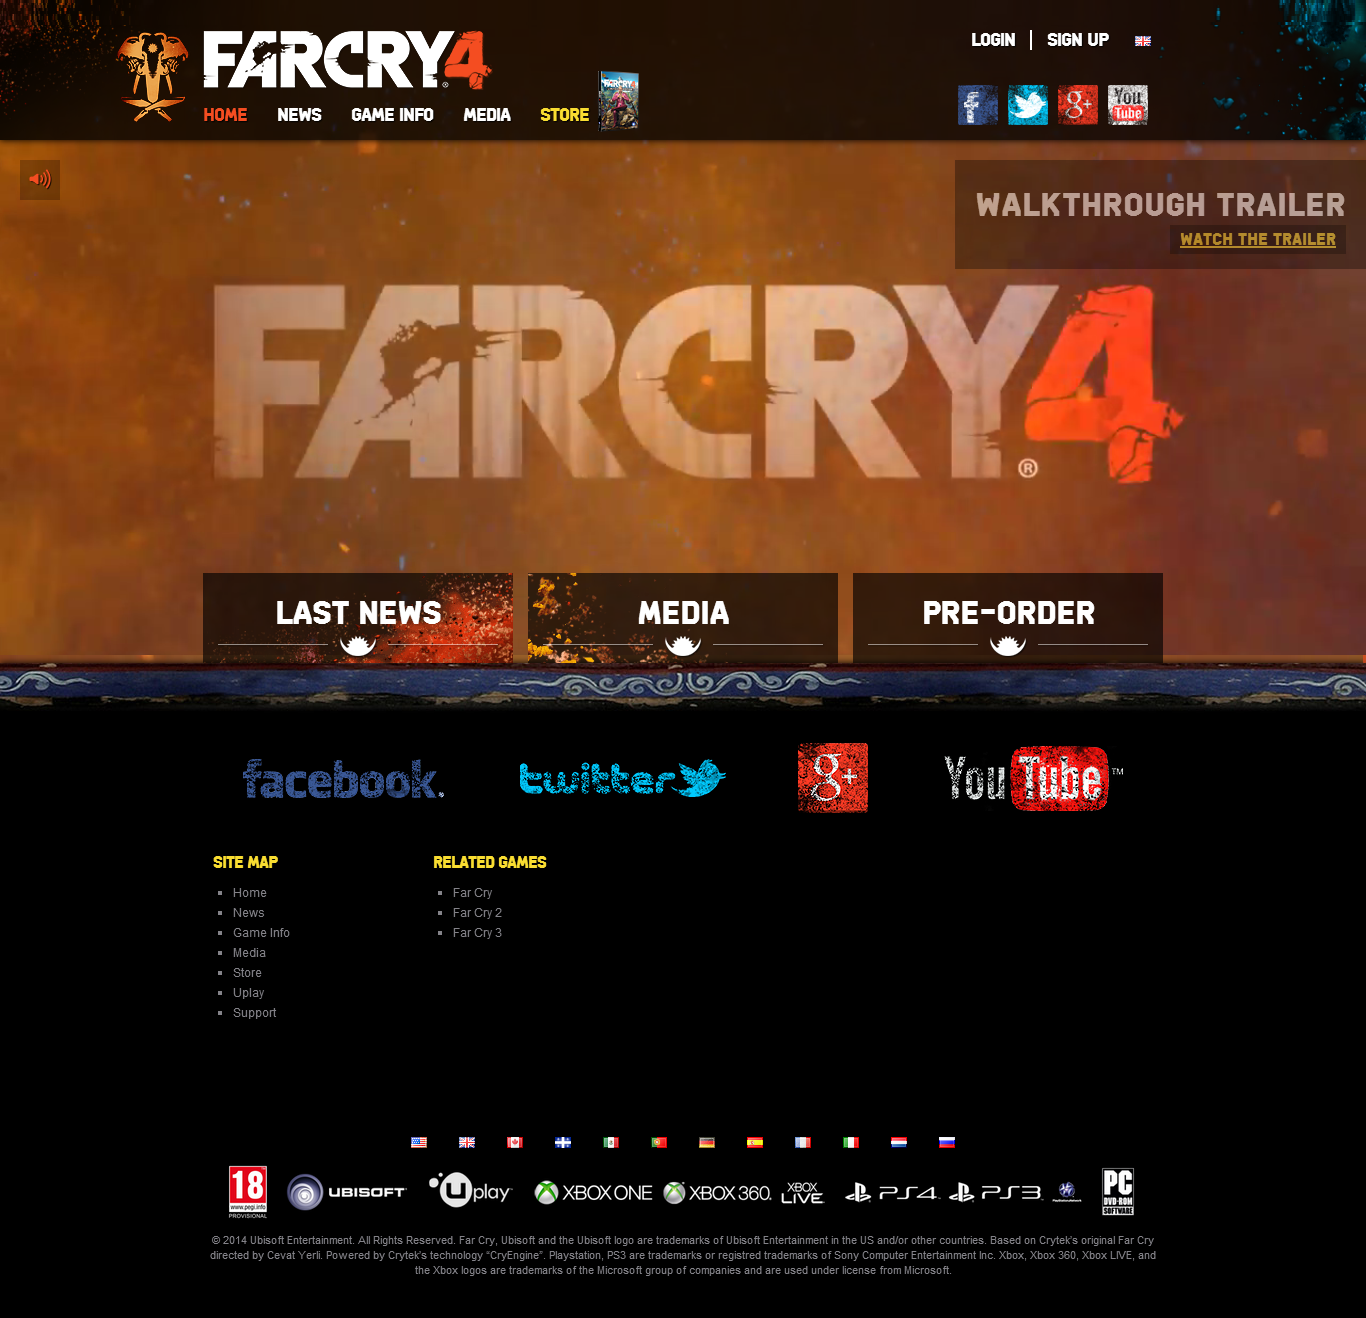 FarCry4 AndroDollar - Far Cry 4 Trailer and Gameplay Demo shows off amazing graphics and how crazy the game is going to be